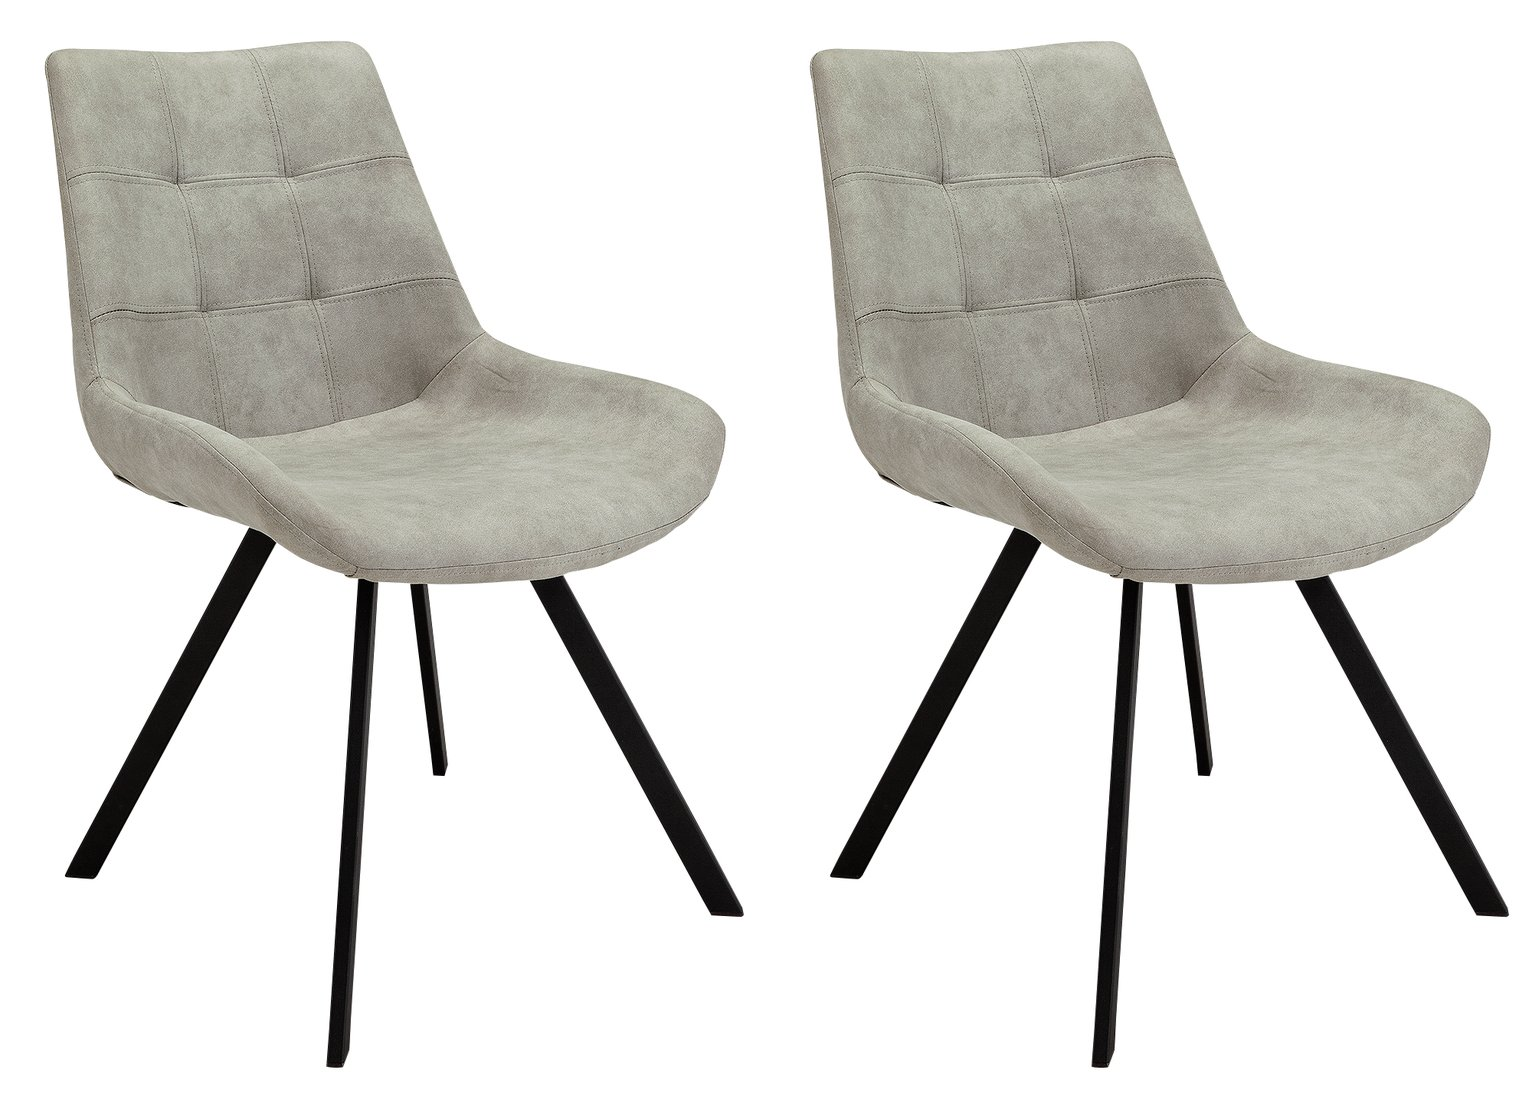 Argos Home Tribeca Pair of Microfibre Dining Chairs - Grey